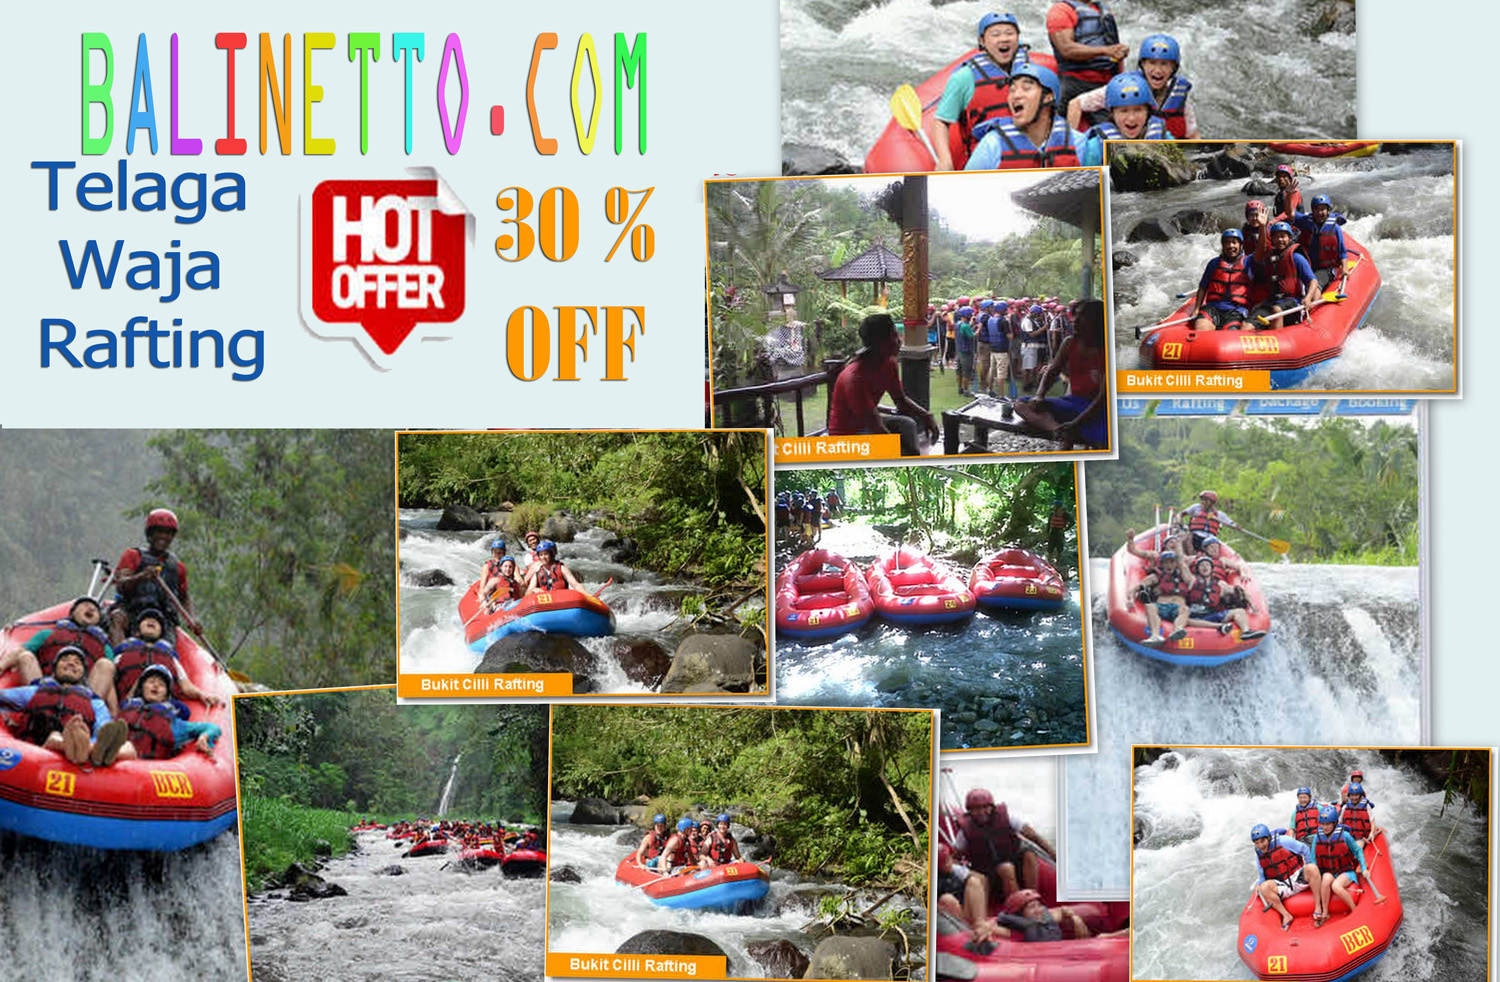 Balinetto Tiket Voucher Donat Boat Watersport Tanjung Benoa Bali White Water Rafting Telaga Waja Discount 30 Cheap